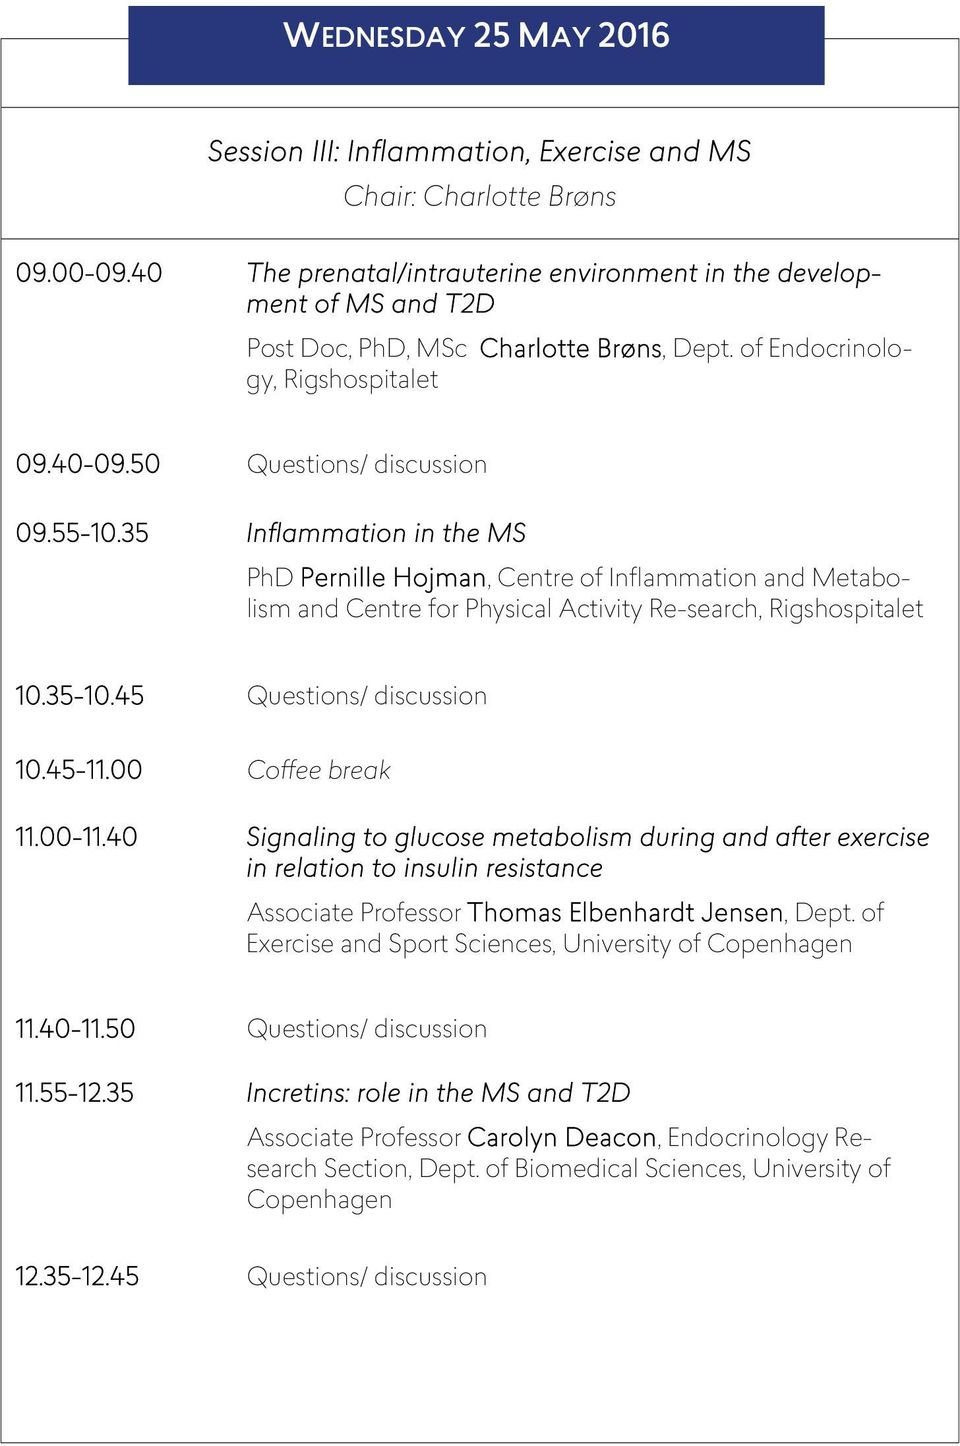 35 Inflammation in the MS PhD Pernille Hojman, Centre of Inflammation and Metabolism and Centre for Physical Activity Re-search, Rigshospitalet 10.35-10.45 Questions/ discussion 10.45-11.